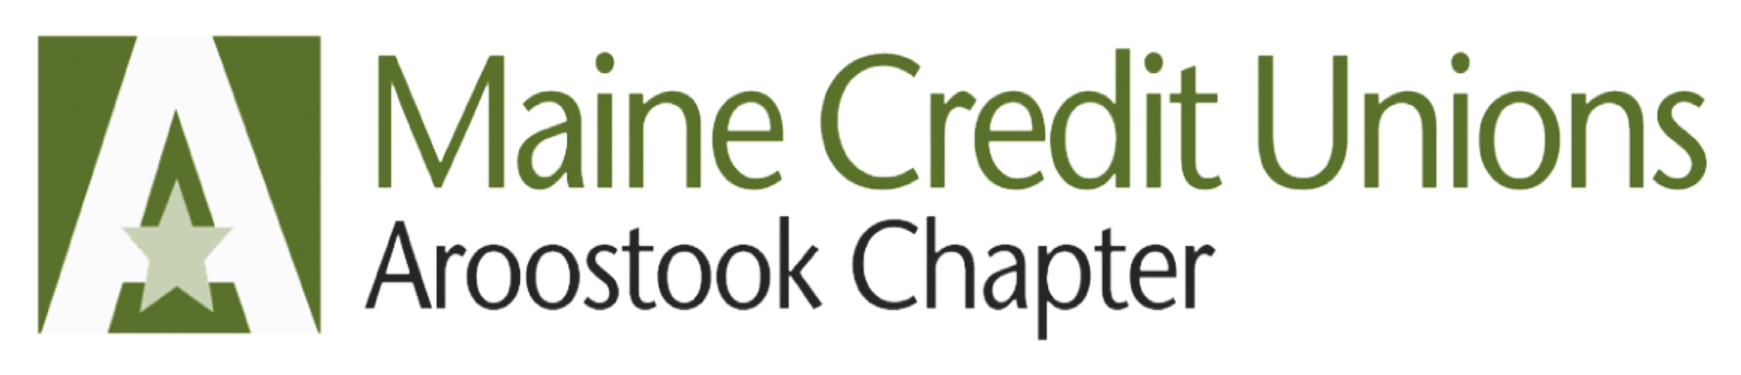 Logo for the Aroostook Chapter of Maine Credit Unions